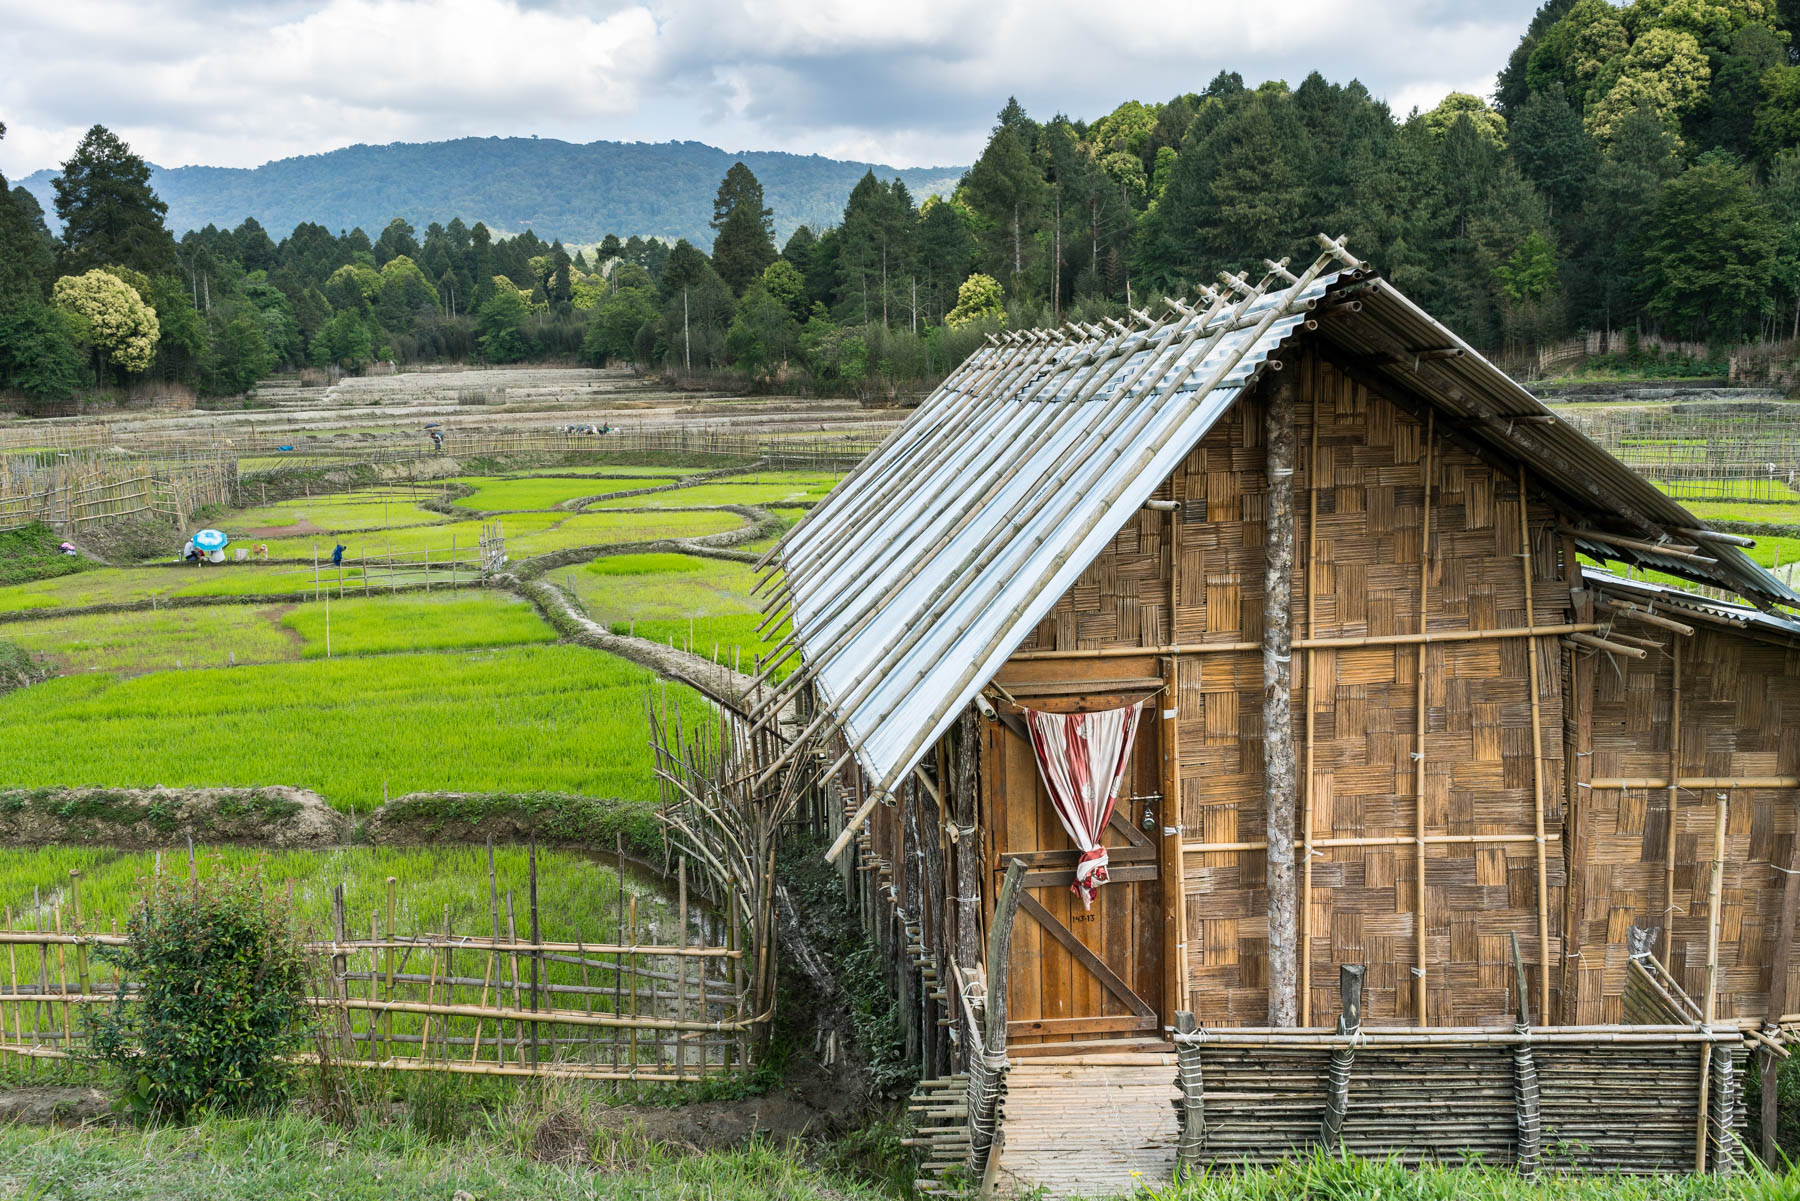 Backpacking Arunachal Pradesh travel guide - A traditional bamboo house in Ziro Valley - Lost With Purpose